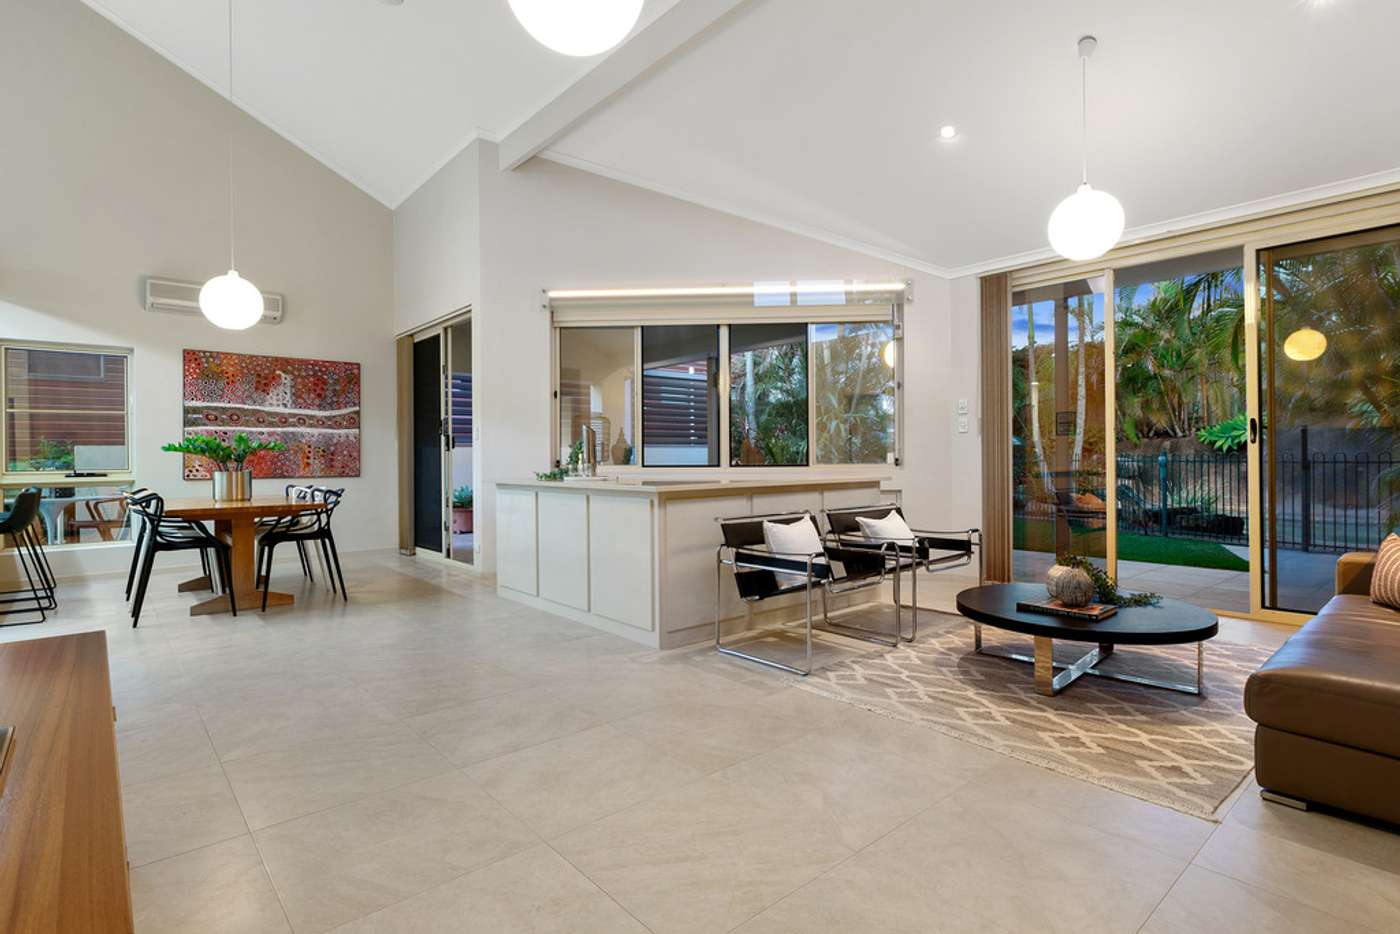 Seventh view of Homely house listing, 8 Conlan Street, Carina Heights QLD 4152